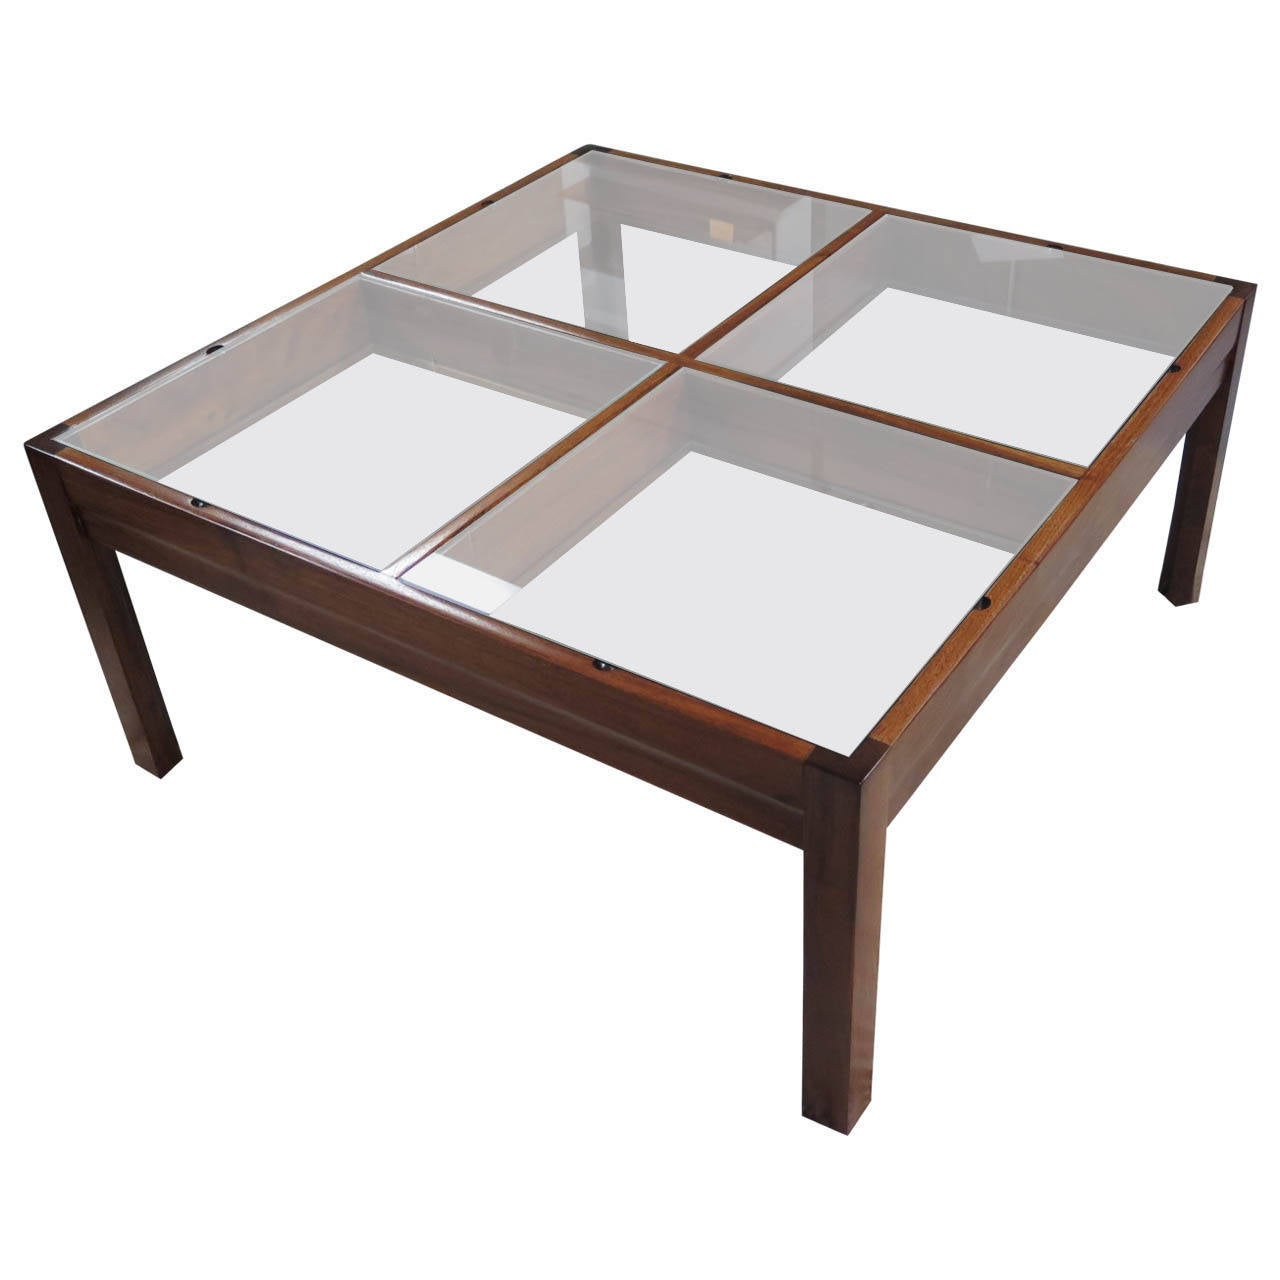 Unusual display coffee table 1960 at 1stdibs for Coffee tables quirky